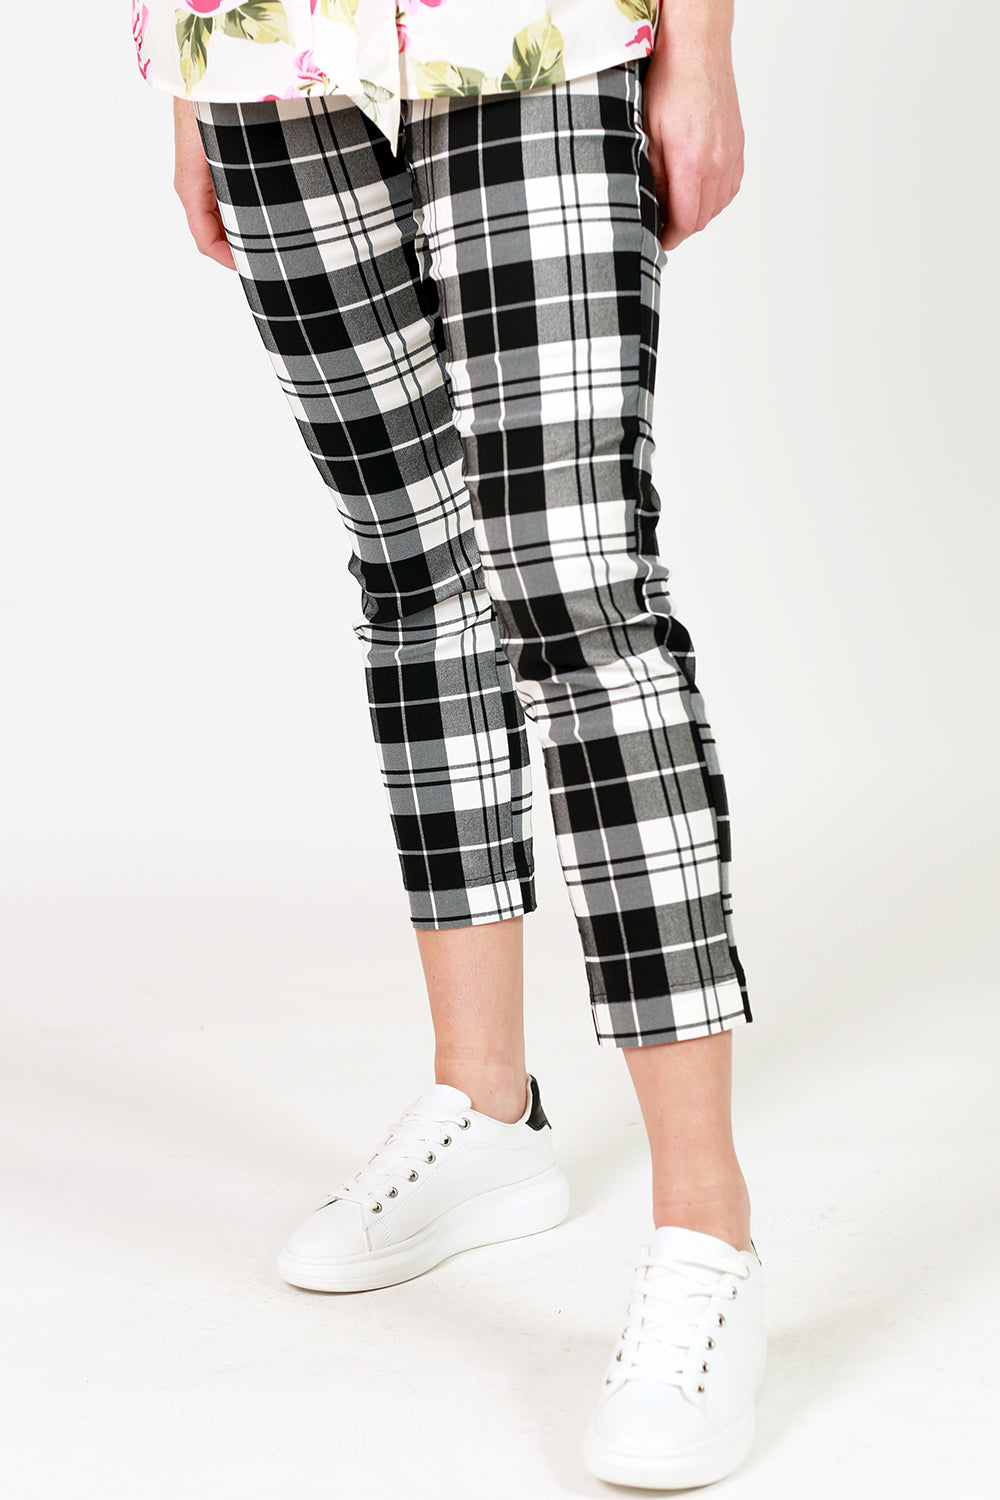 vita vogue pant black and white check